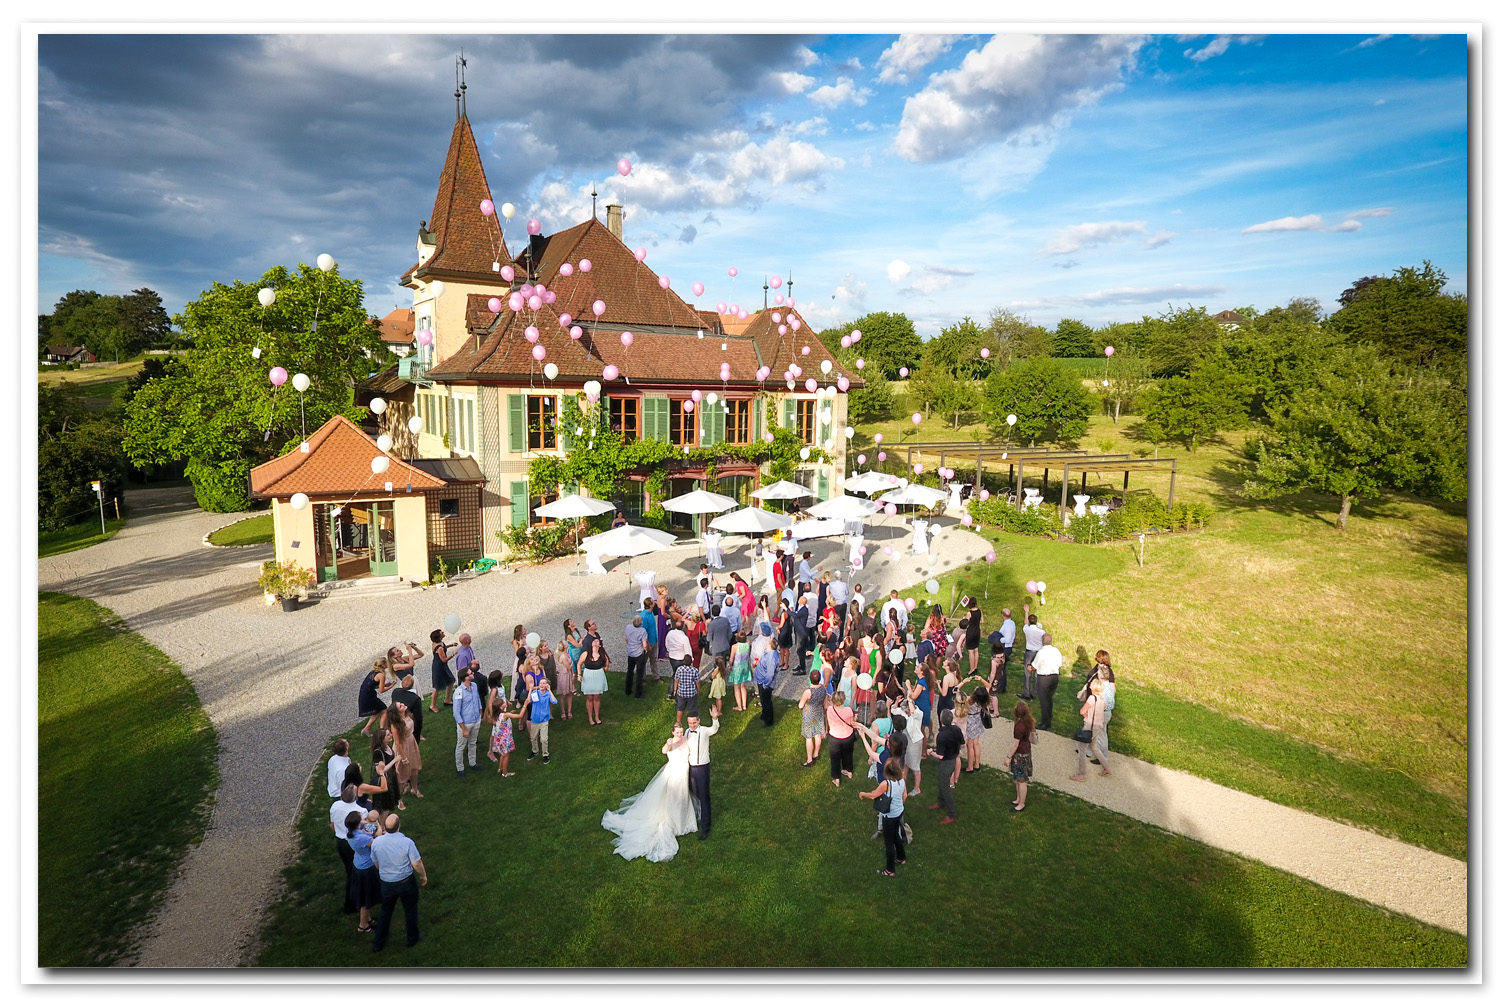 photo mariage au drone, lâcher de ballon